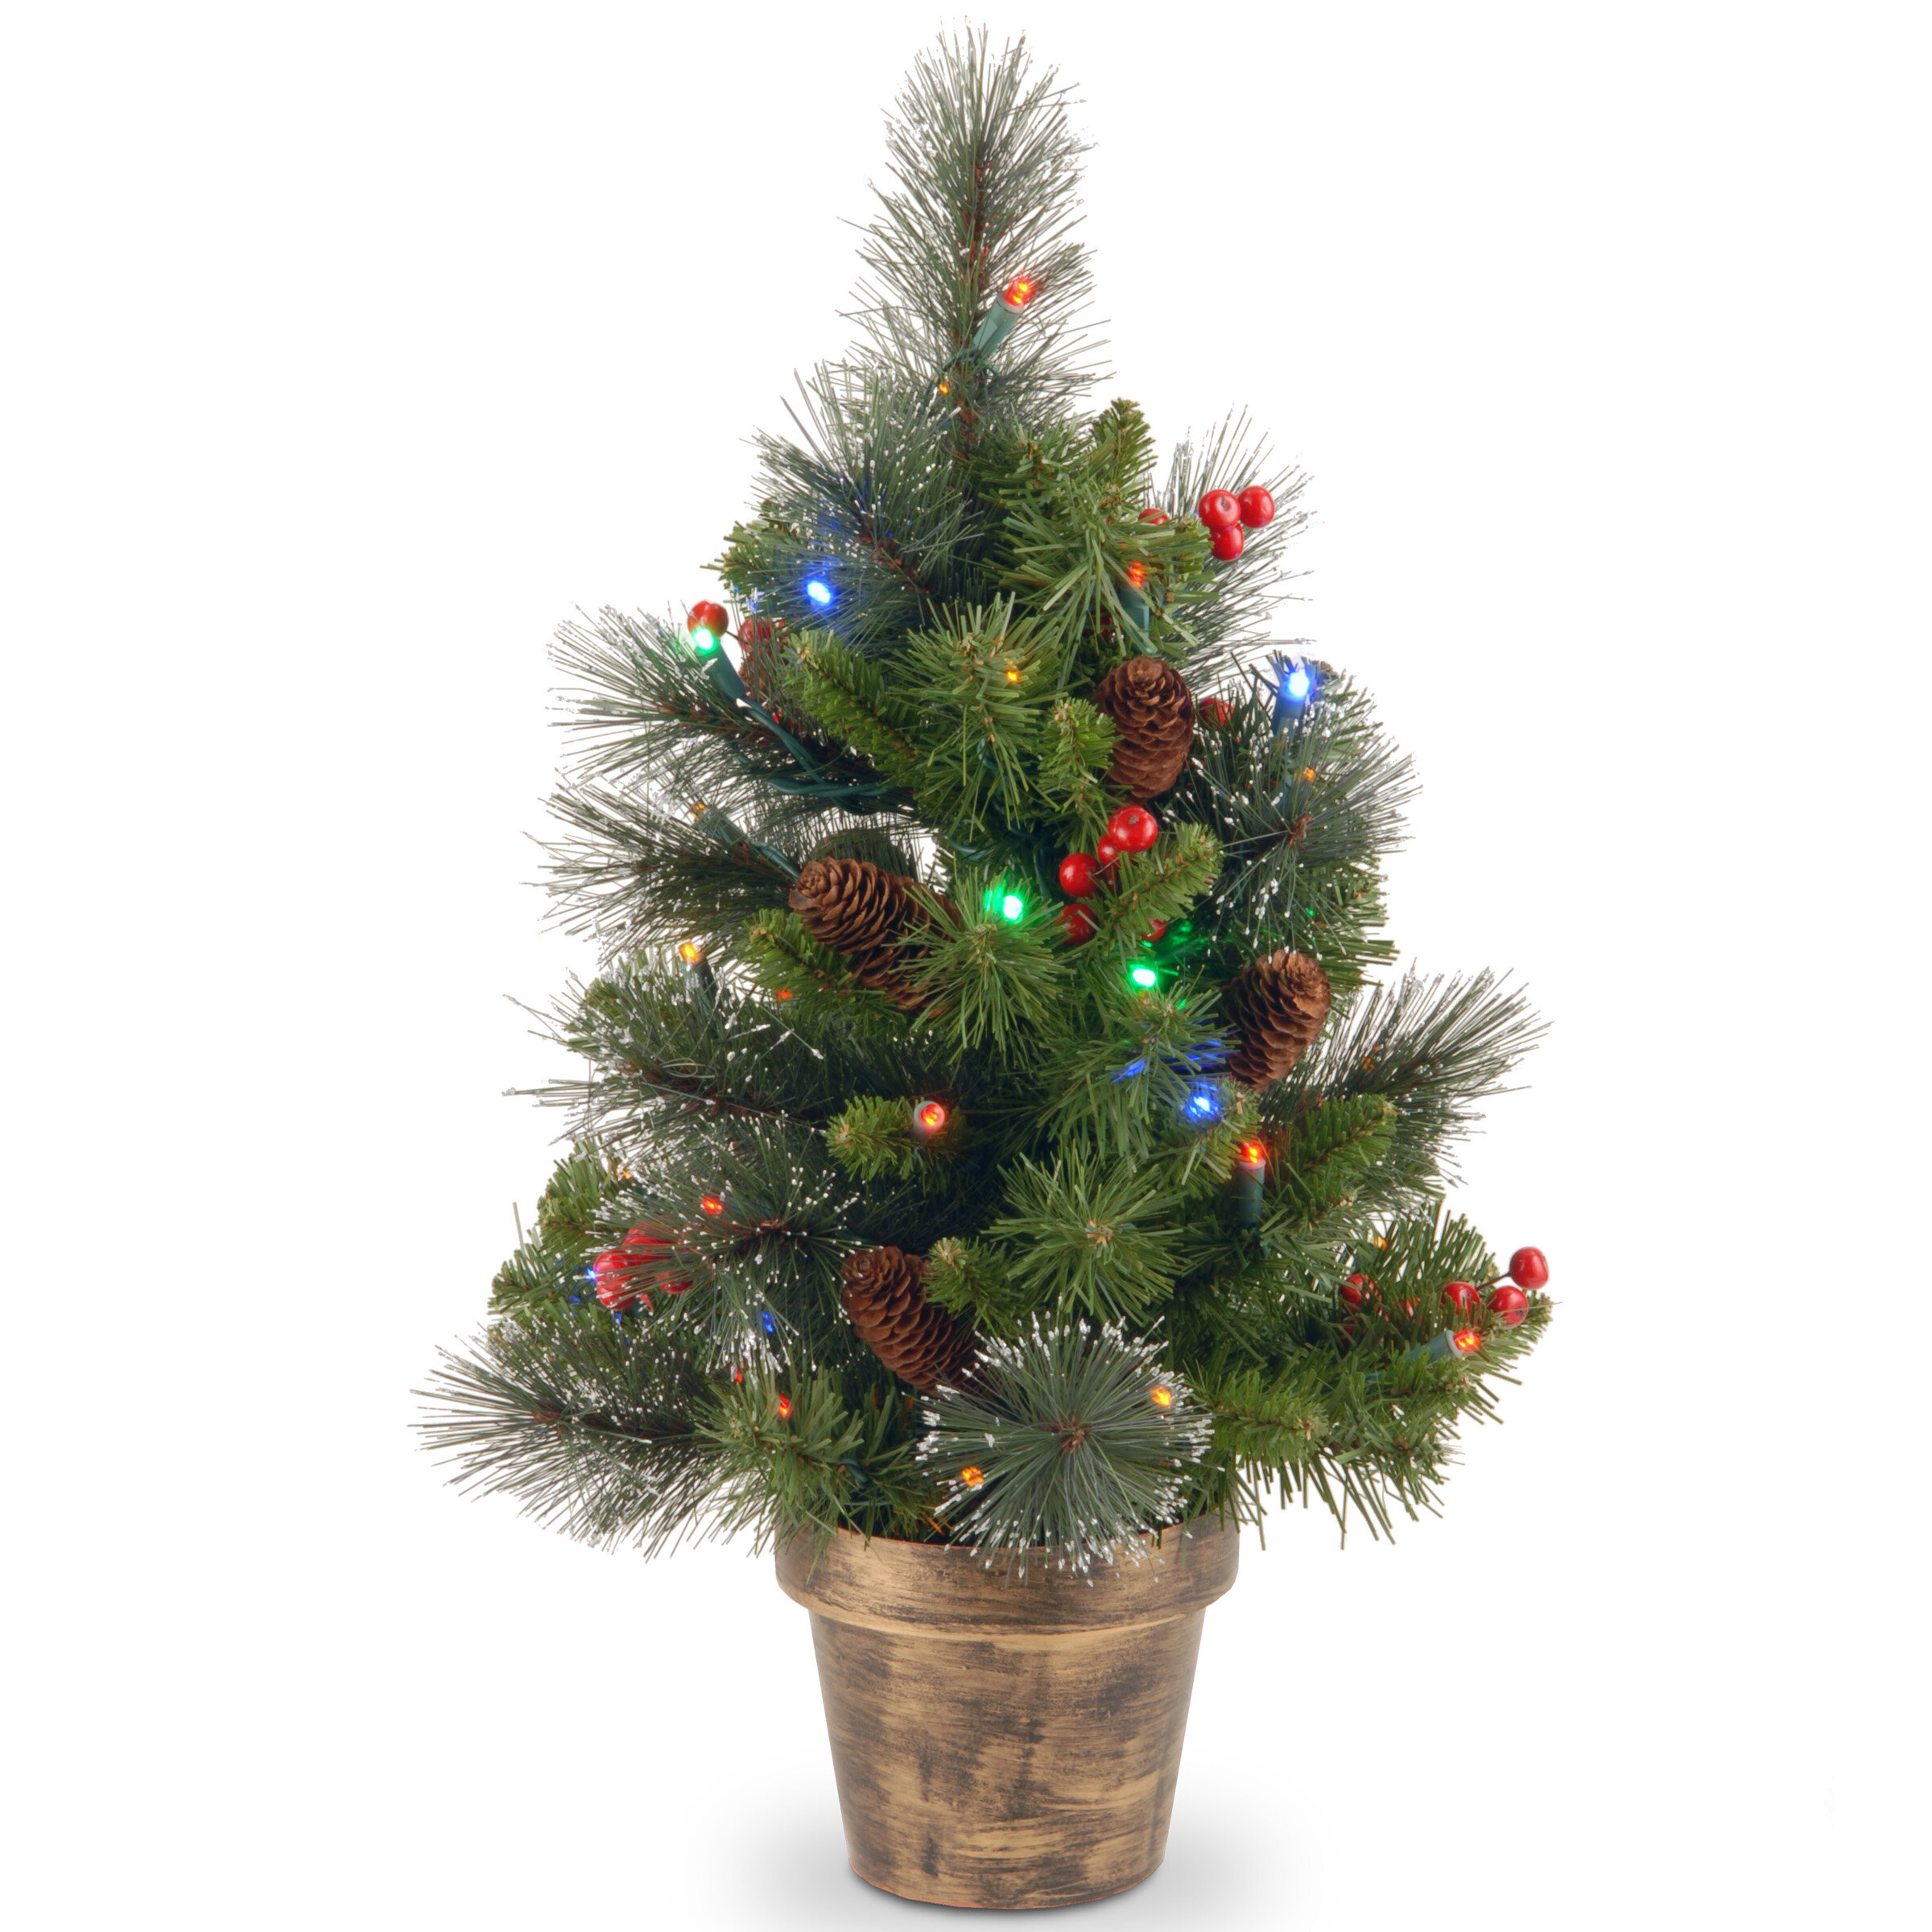 Three Posts Spruce Small 2 Green Artificial Christmas Tree With 35 Multicolored Lights Led Reviews Wayfair